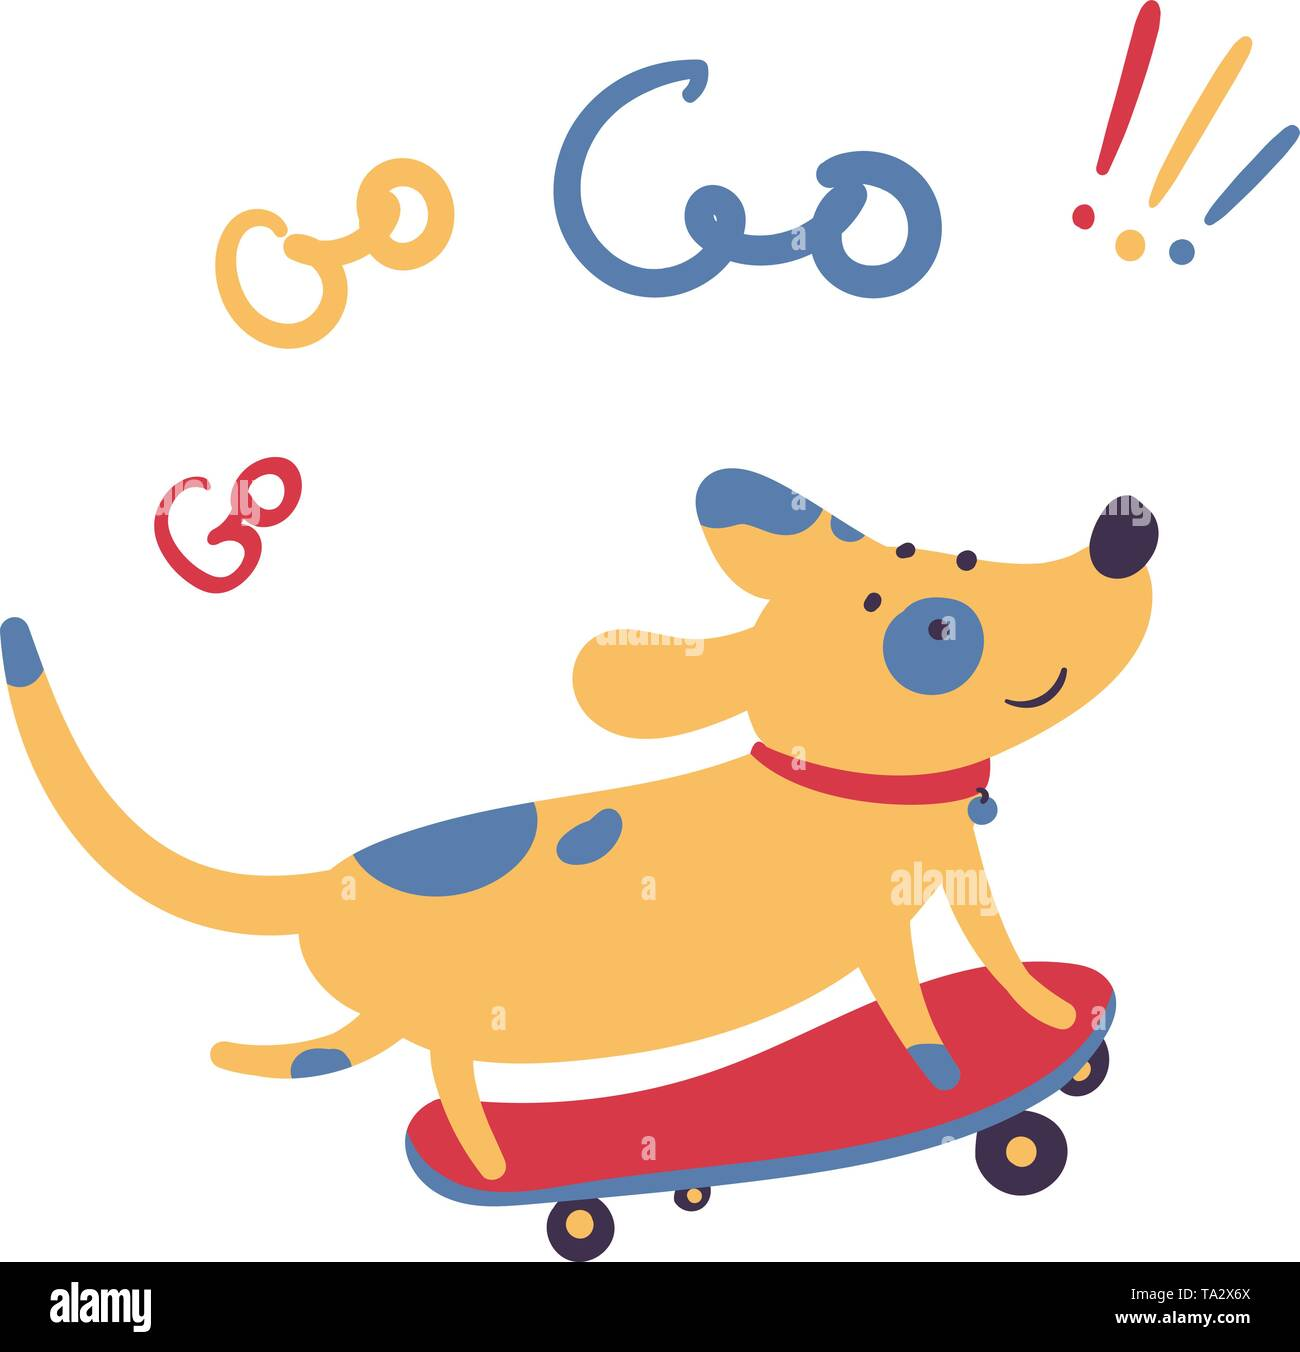 Dog skates on skateboard. Go go go lettering. Pet domestic animal stands three foot on a personal transport, skate. Summer activity sports and motivat - Stock Image